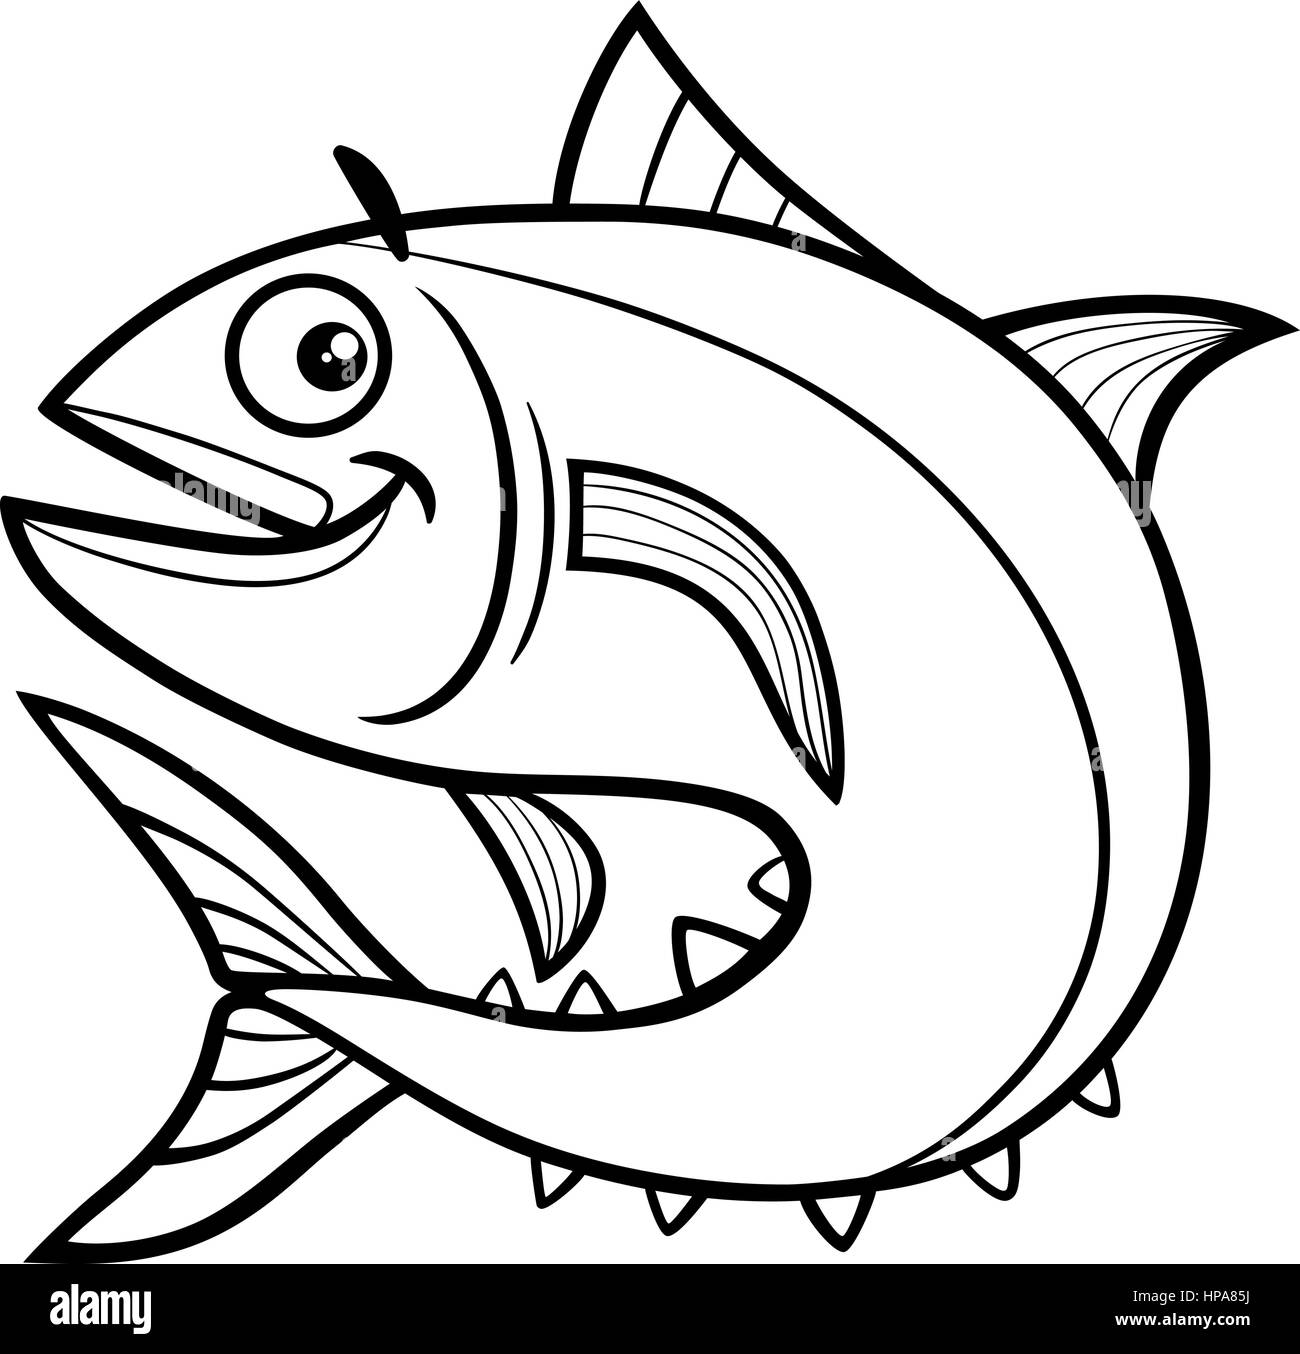 A Cutecartoon Fish Coloring Page Black And White Ausmalbild Fisch